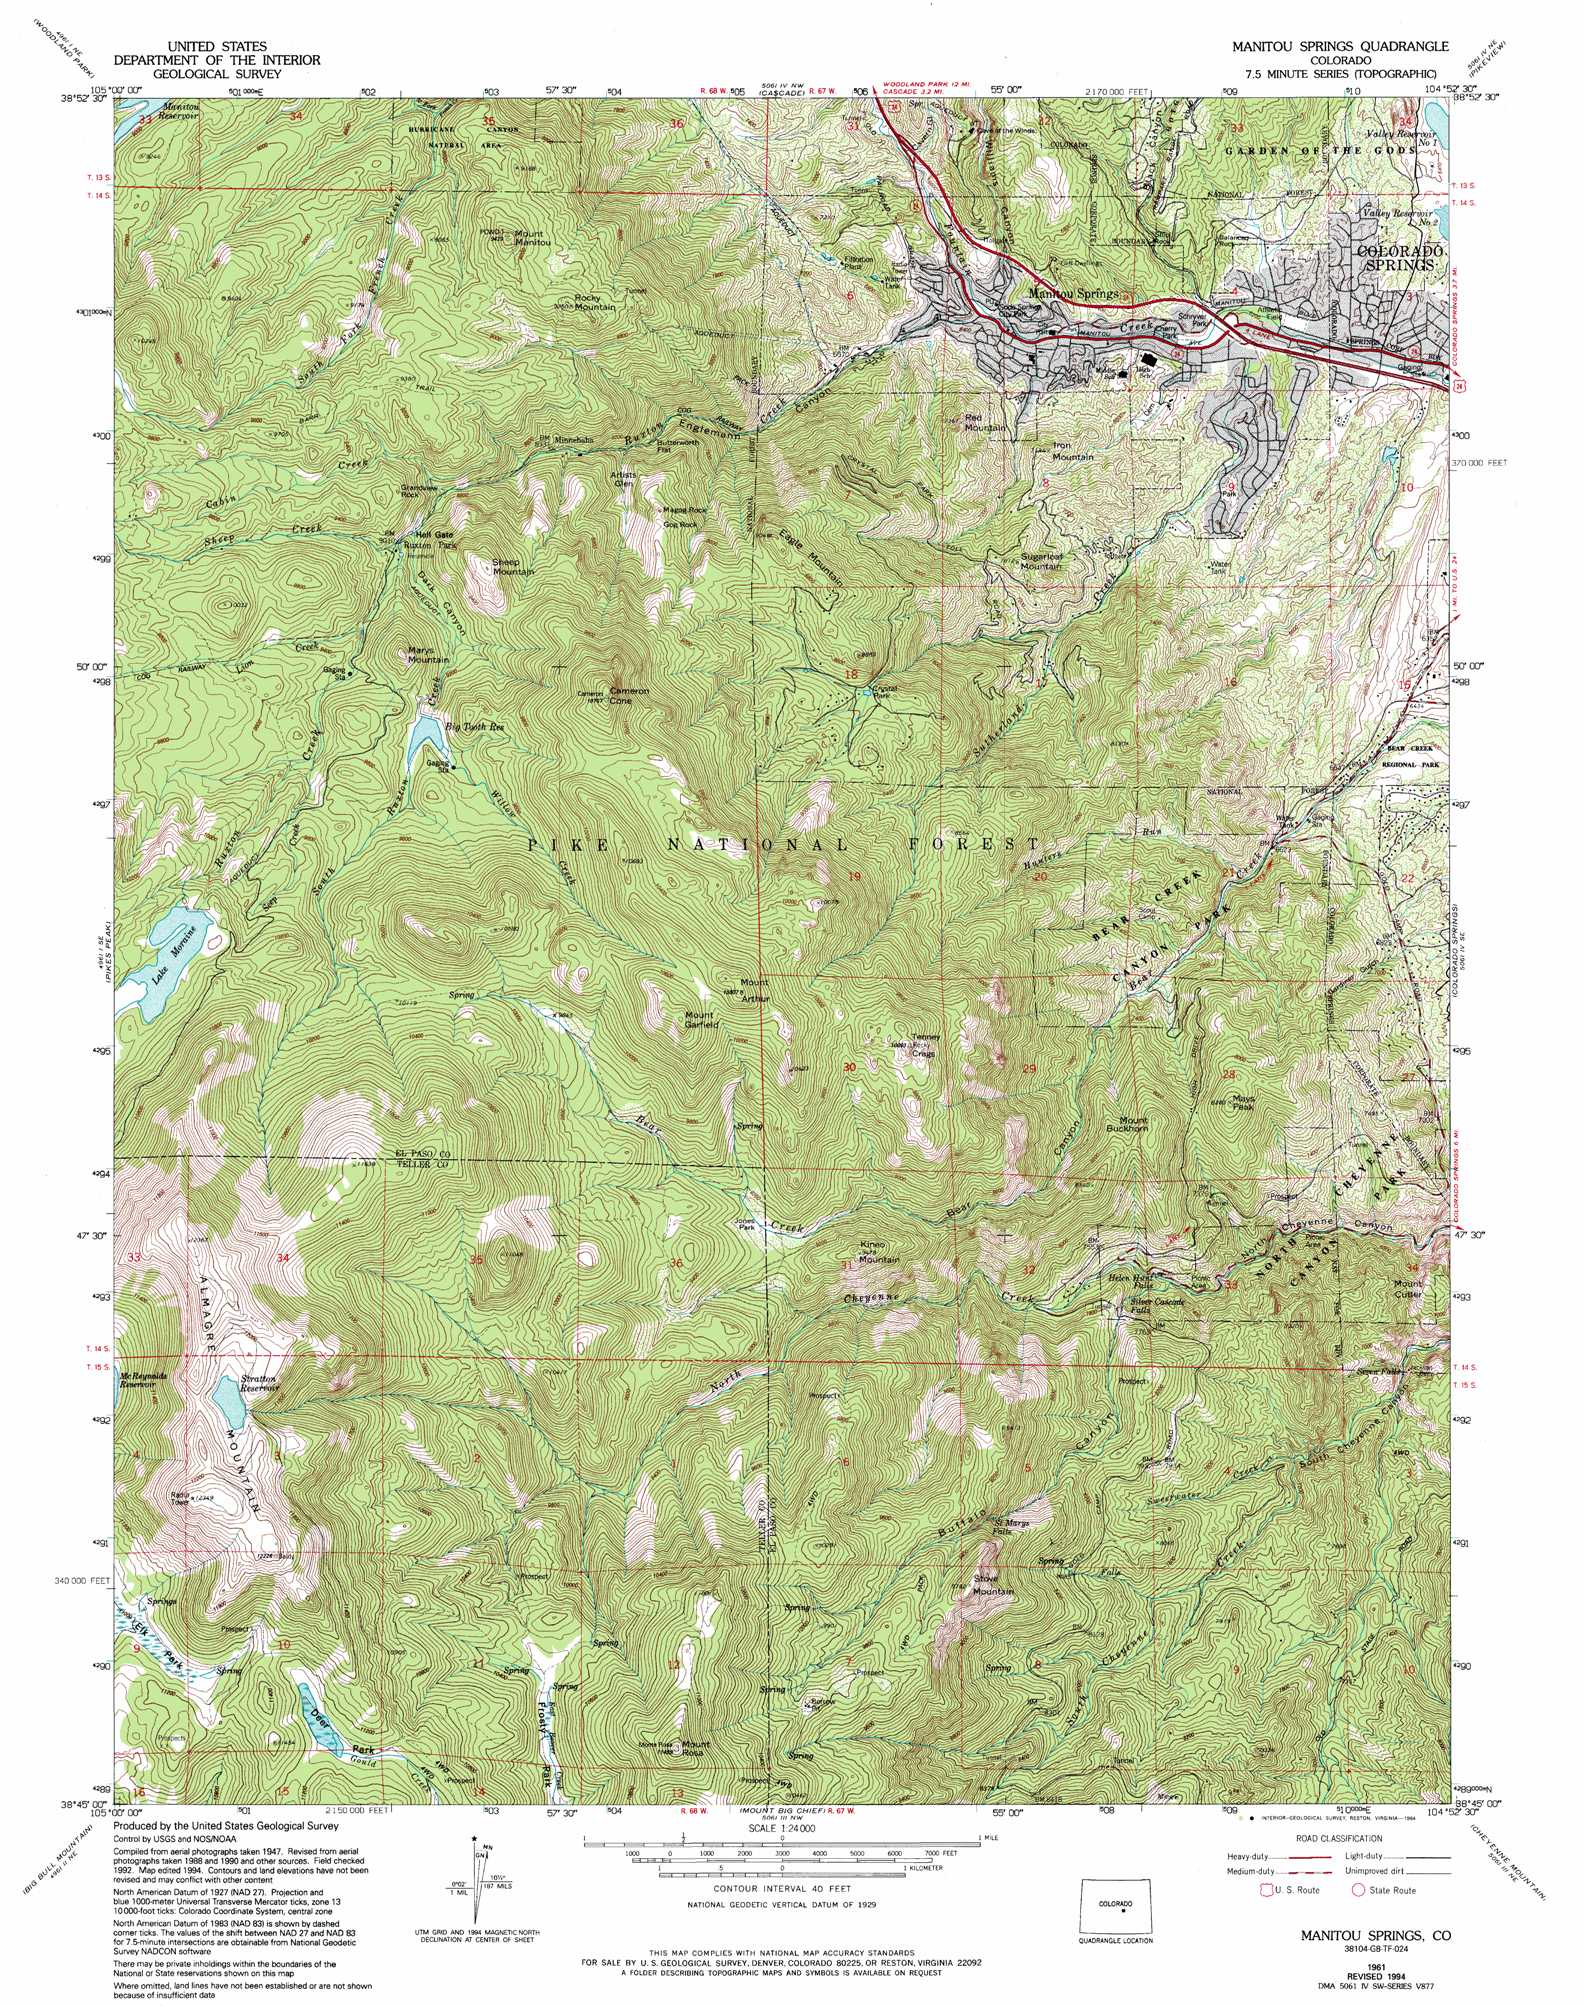 Manitou Springs topographic map, CO - USGS Topo Quad 38104g8 on